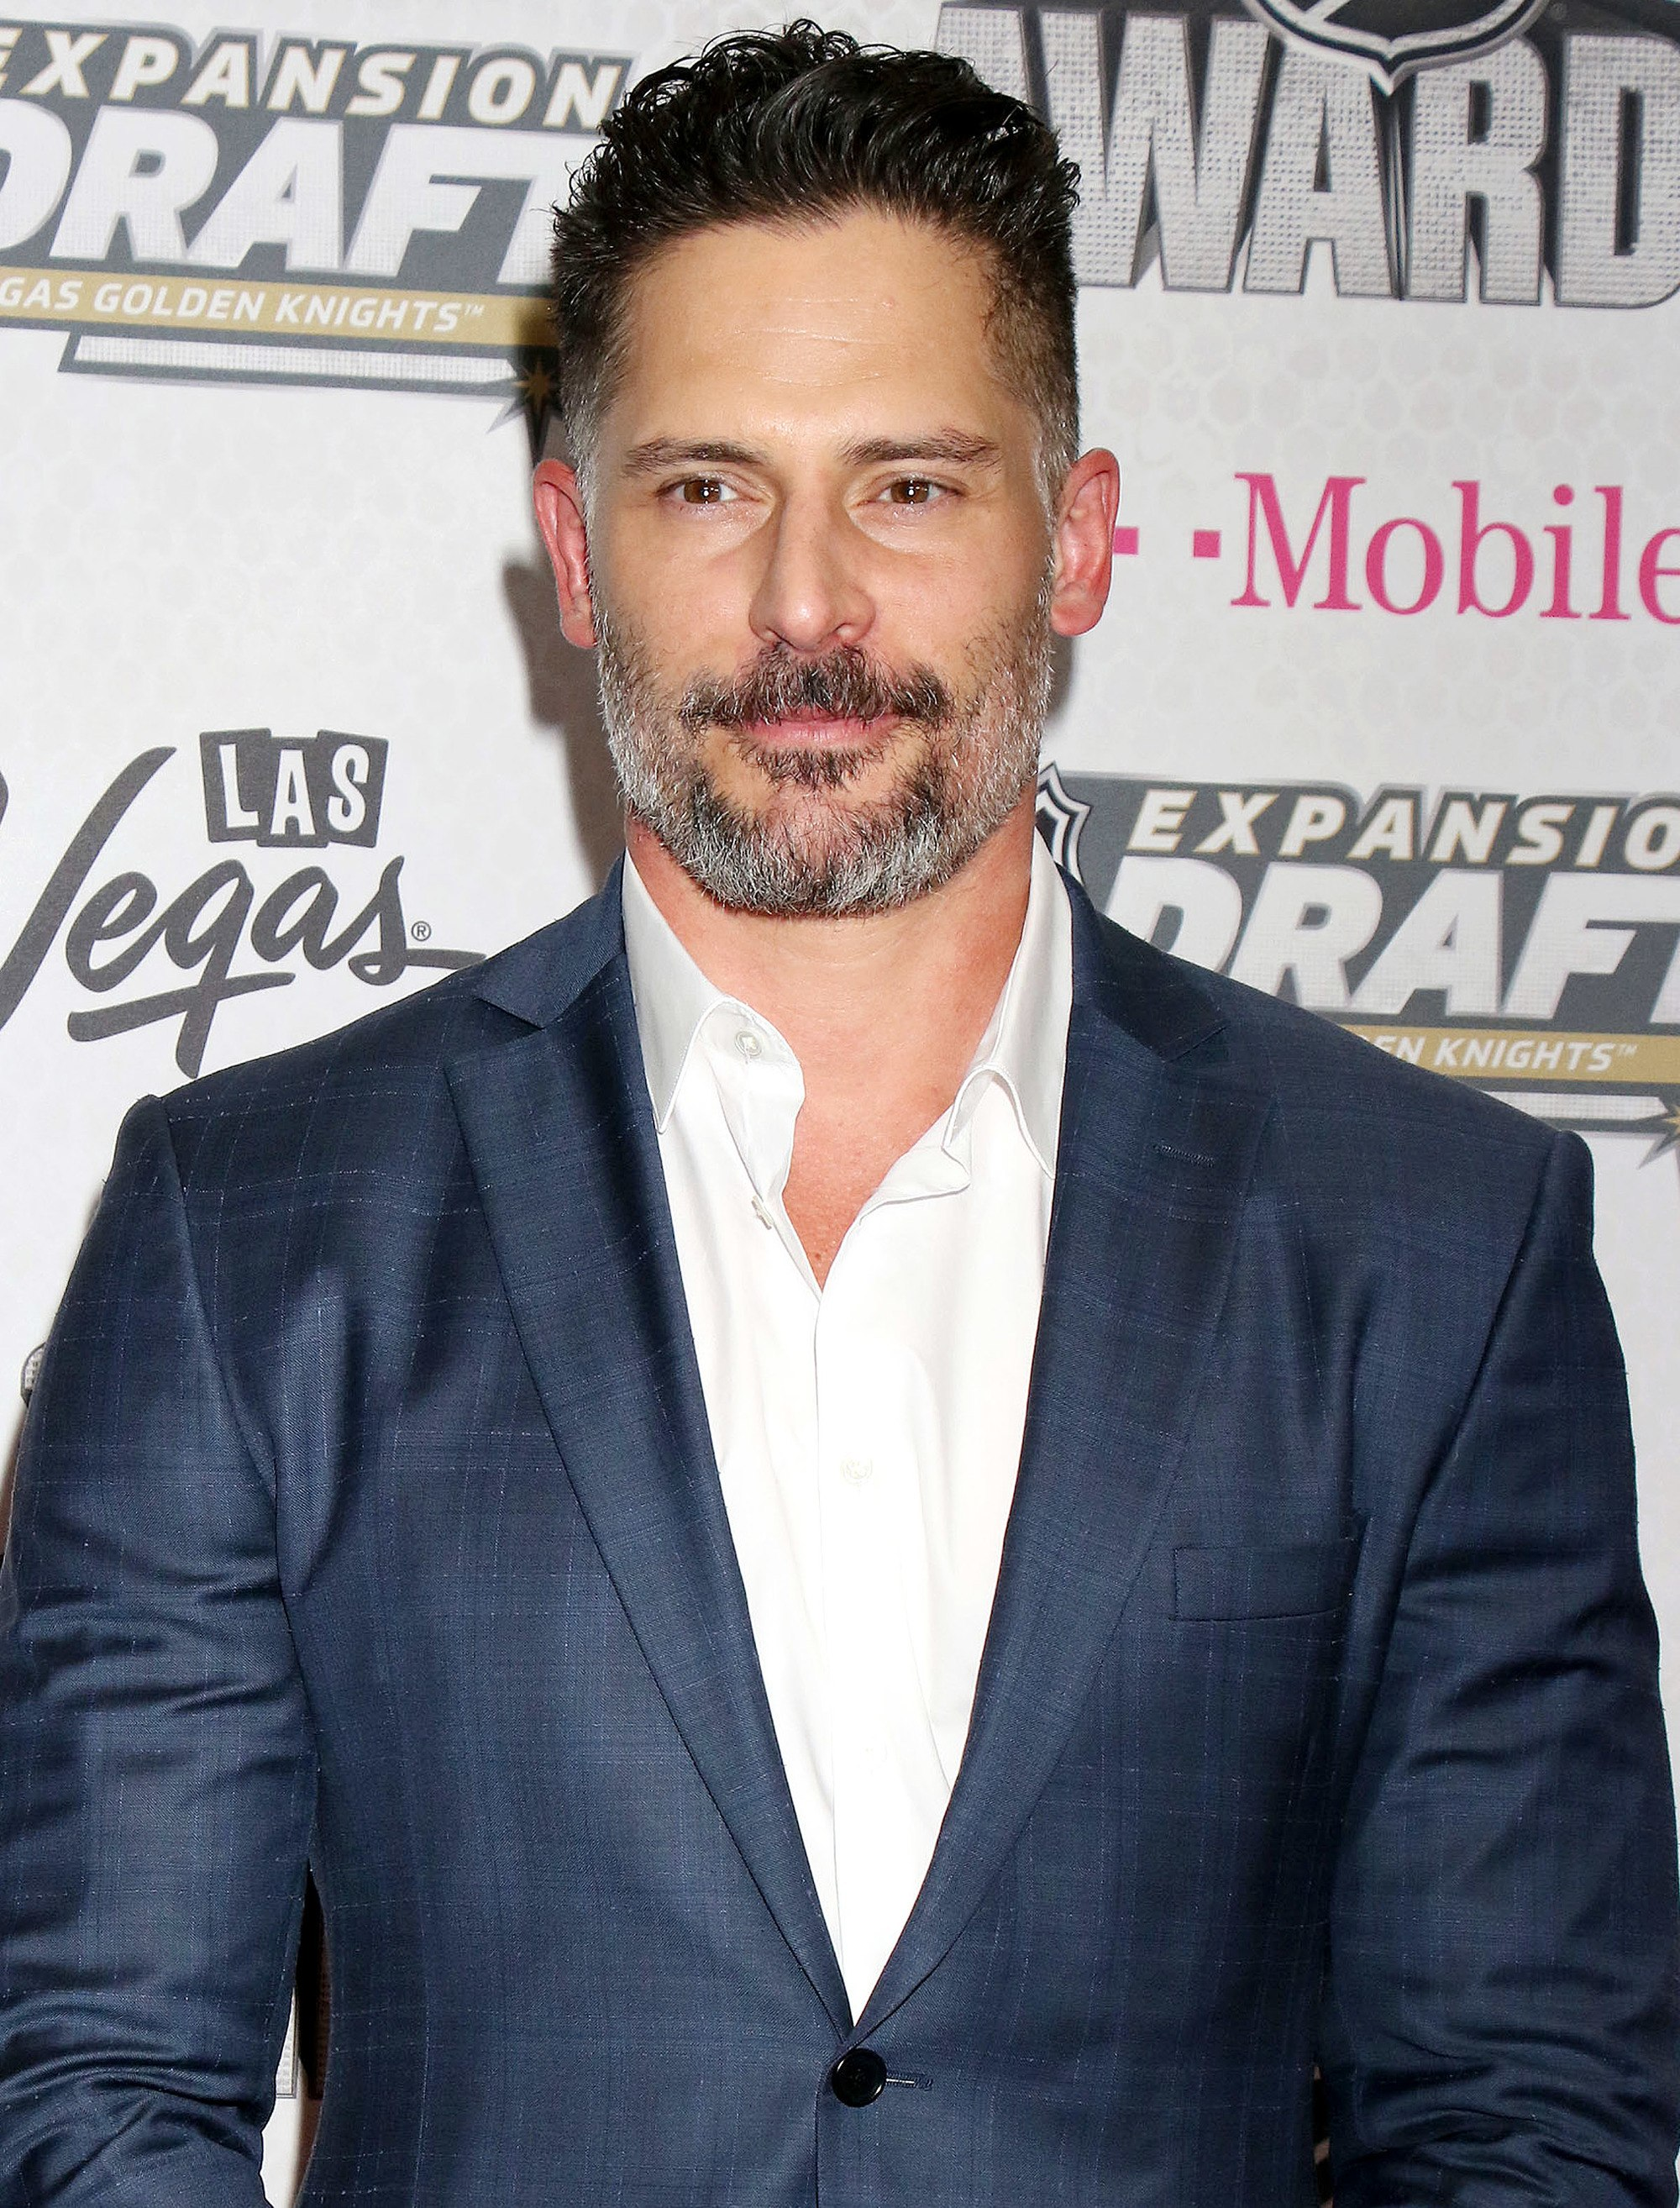 Hairstyles for men over 40: Photo of Joe Manganiello with gelled up brown hair and grey facial hair, wearing a white shirt and blue suit jacket